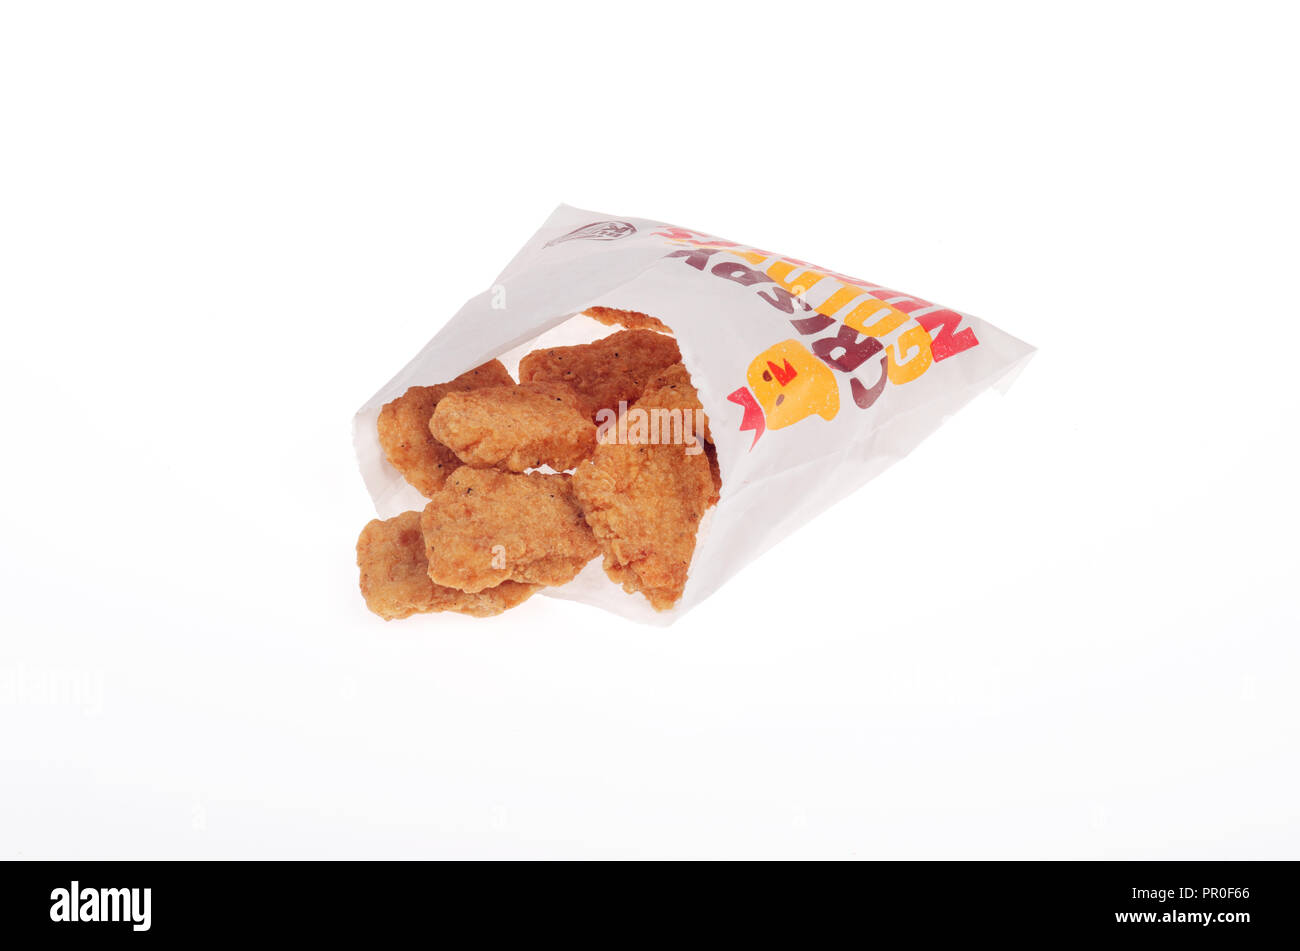 Packet of Burger King Chicken Nuggets - Stock Image